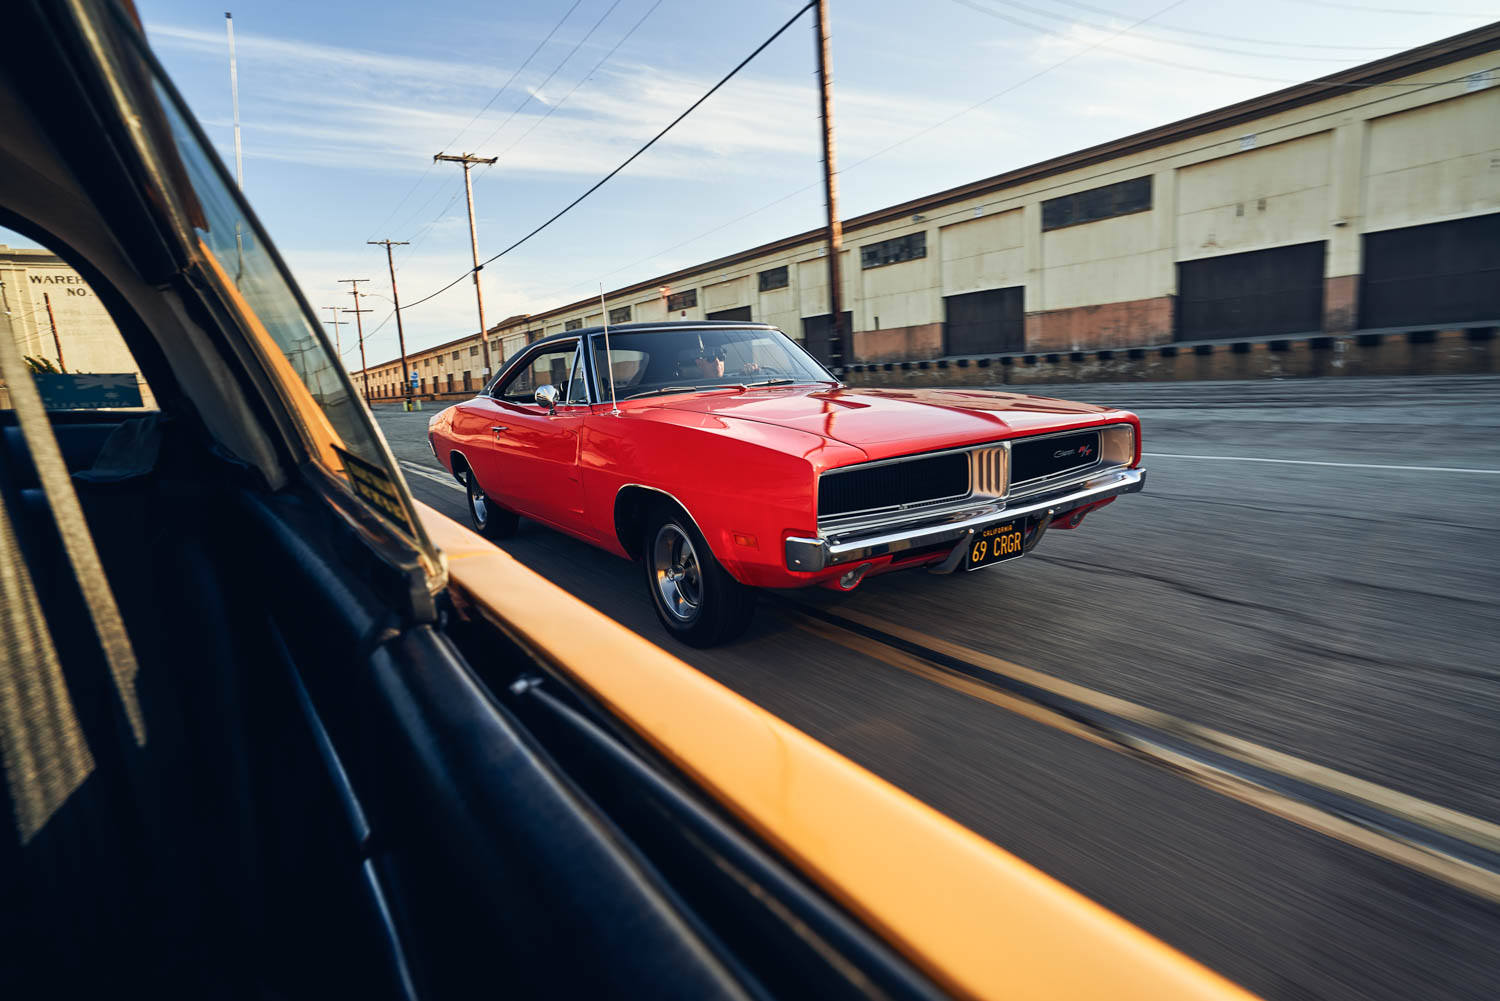 """Dealers poured it on for the Charger. """"People who don't understand cars might say: 'The Dodge Charger is kinda cute,' """" read an ad for Summers Dodge in Mt. Vernon, Illinois. """"It's your duty to make sure they are all sold before that kind of person gets his hands on one."""""""